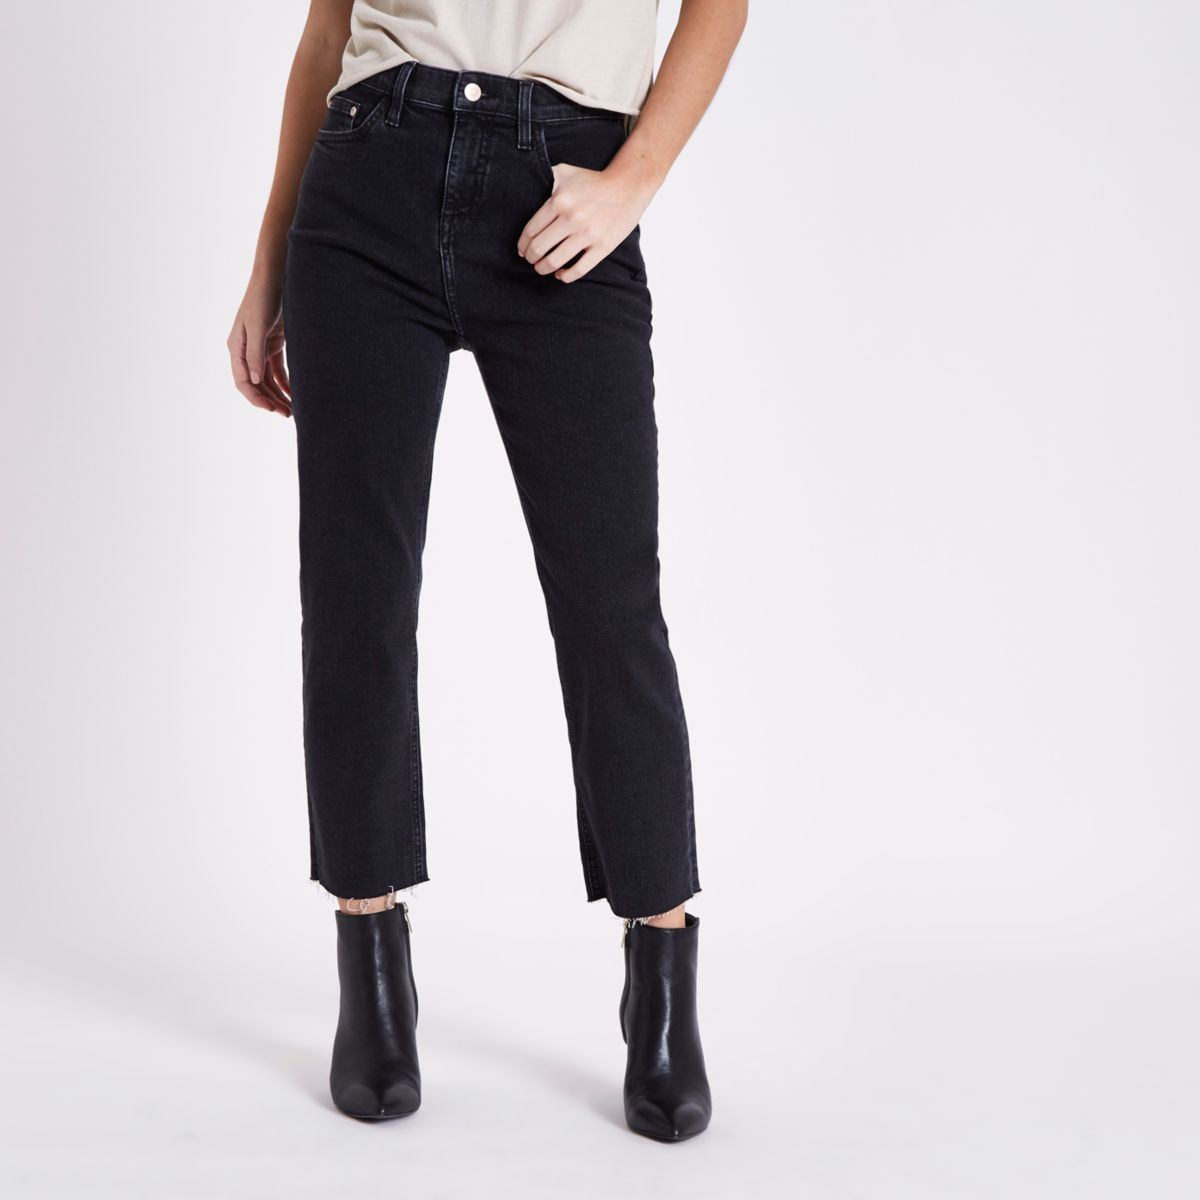 Petite black Bella straight leg jeans